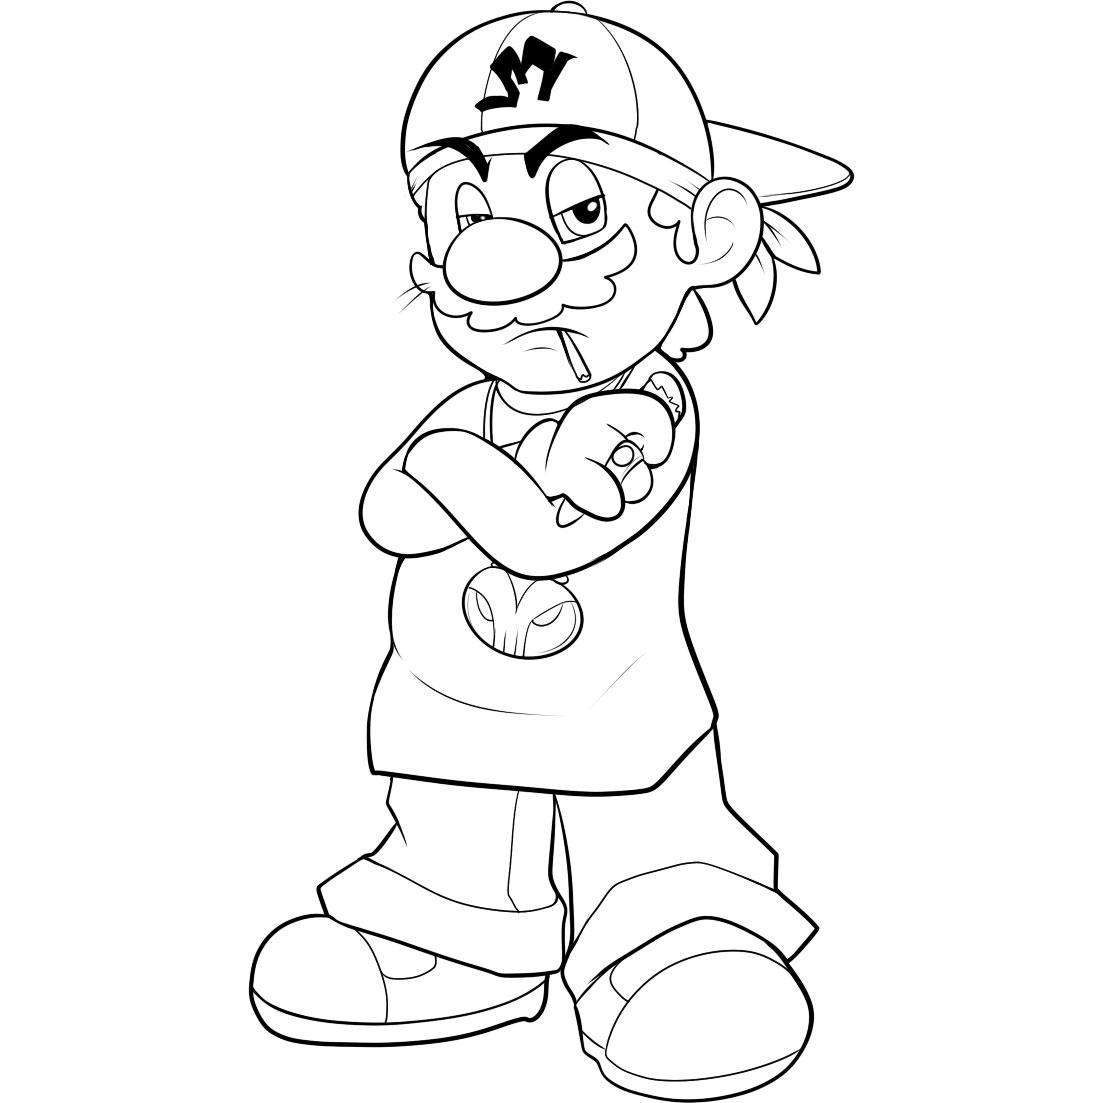 Coloring pages for kids mario bros - Mario Brother Coloring Pages